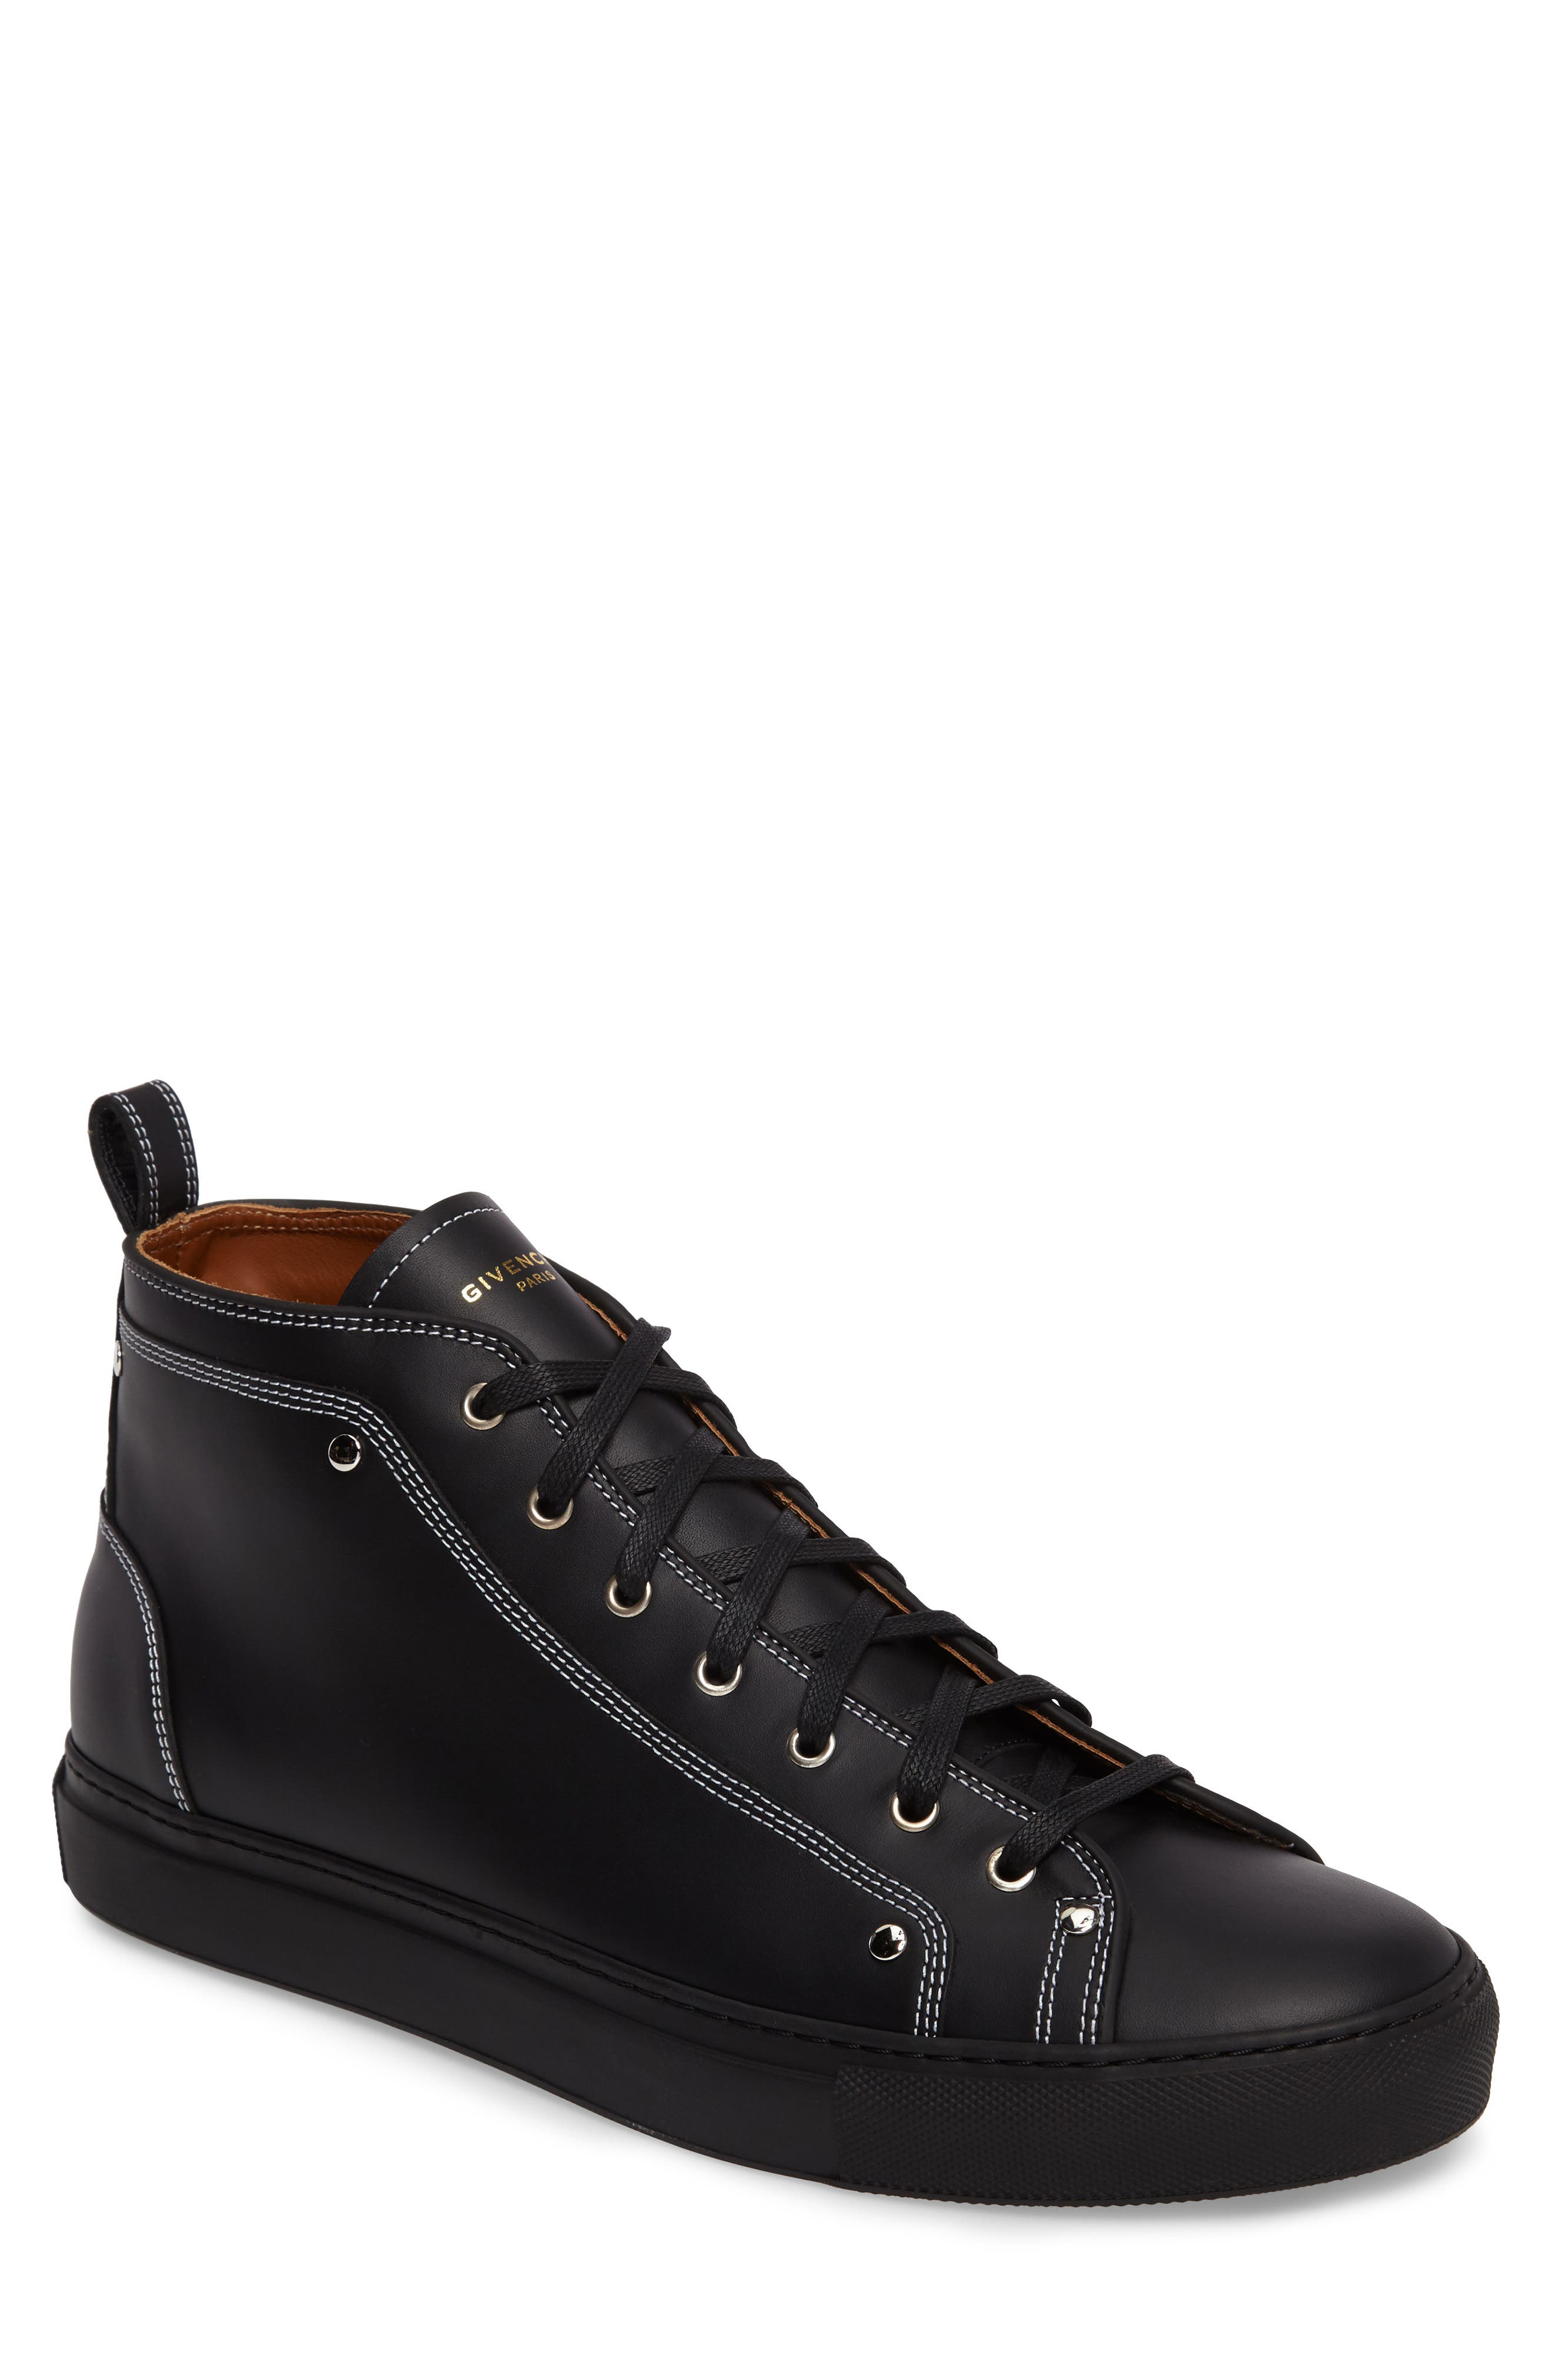 Main Image - Givenchy High Top Sneaker (Men)